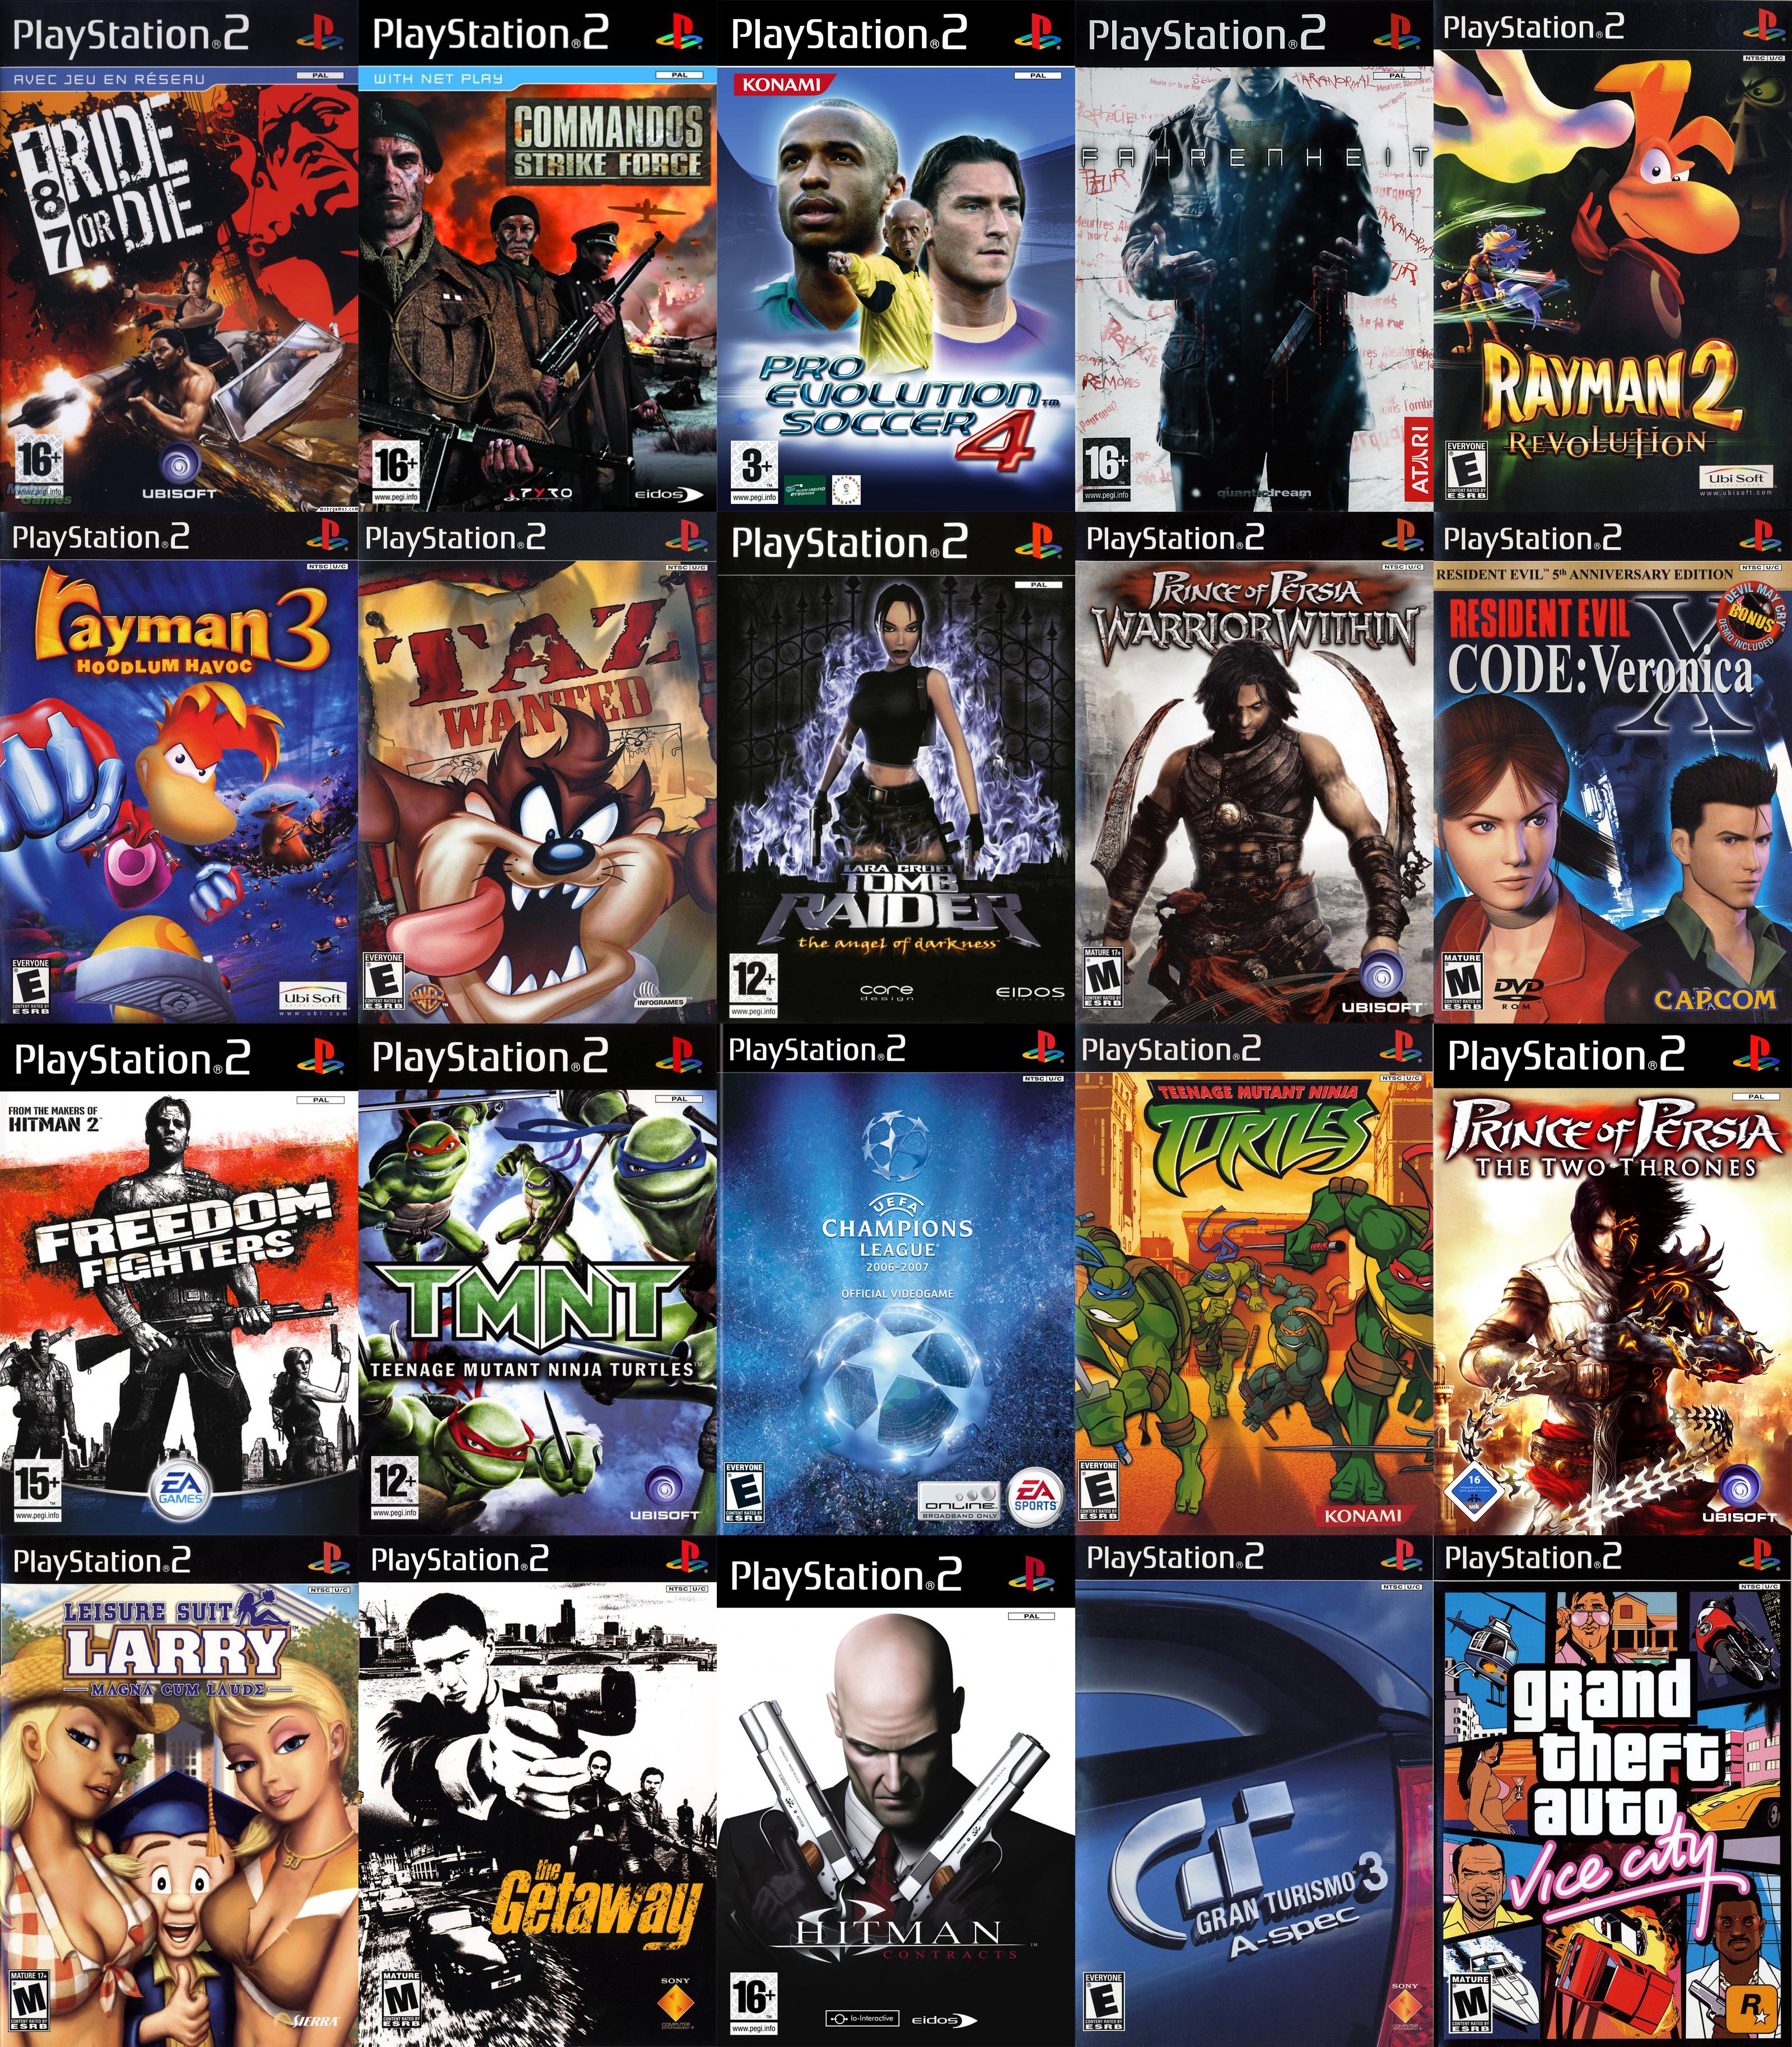 All New Games On Ps3 : New games june playstation by stalkersdxx on